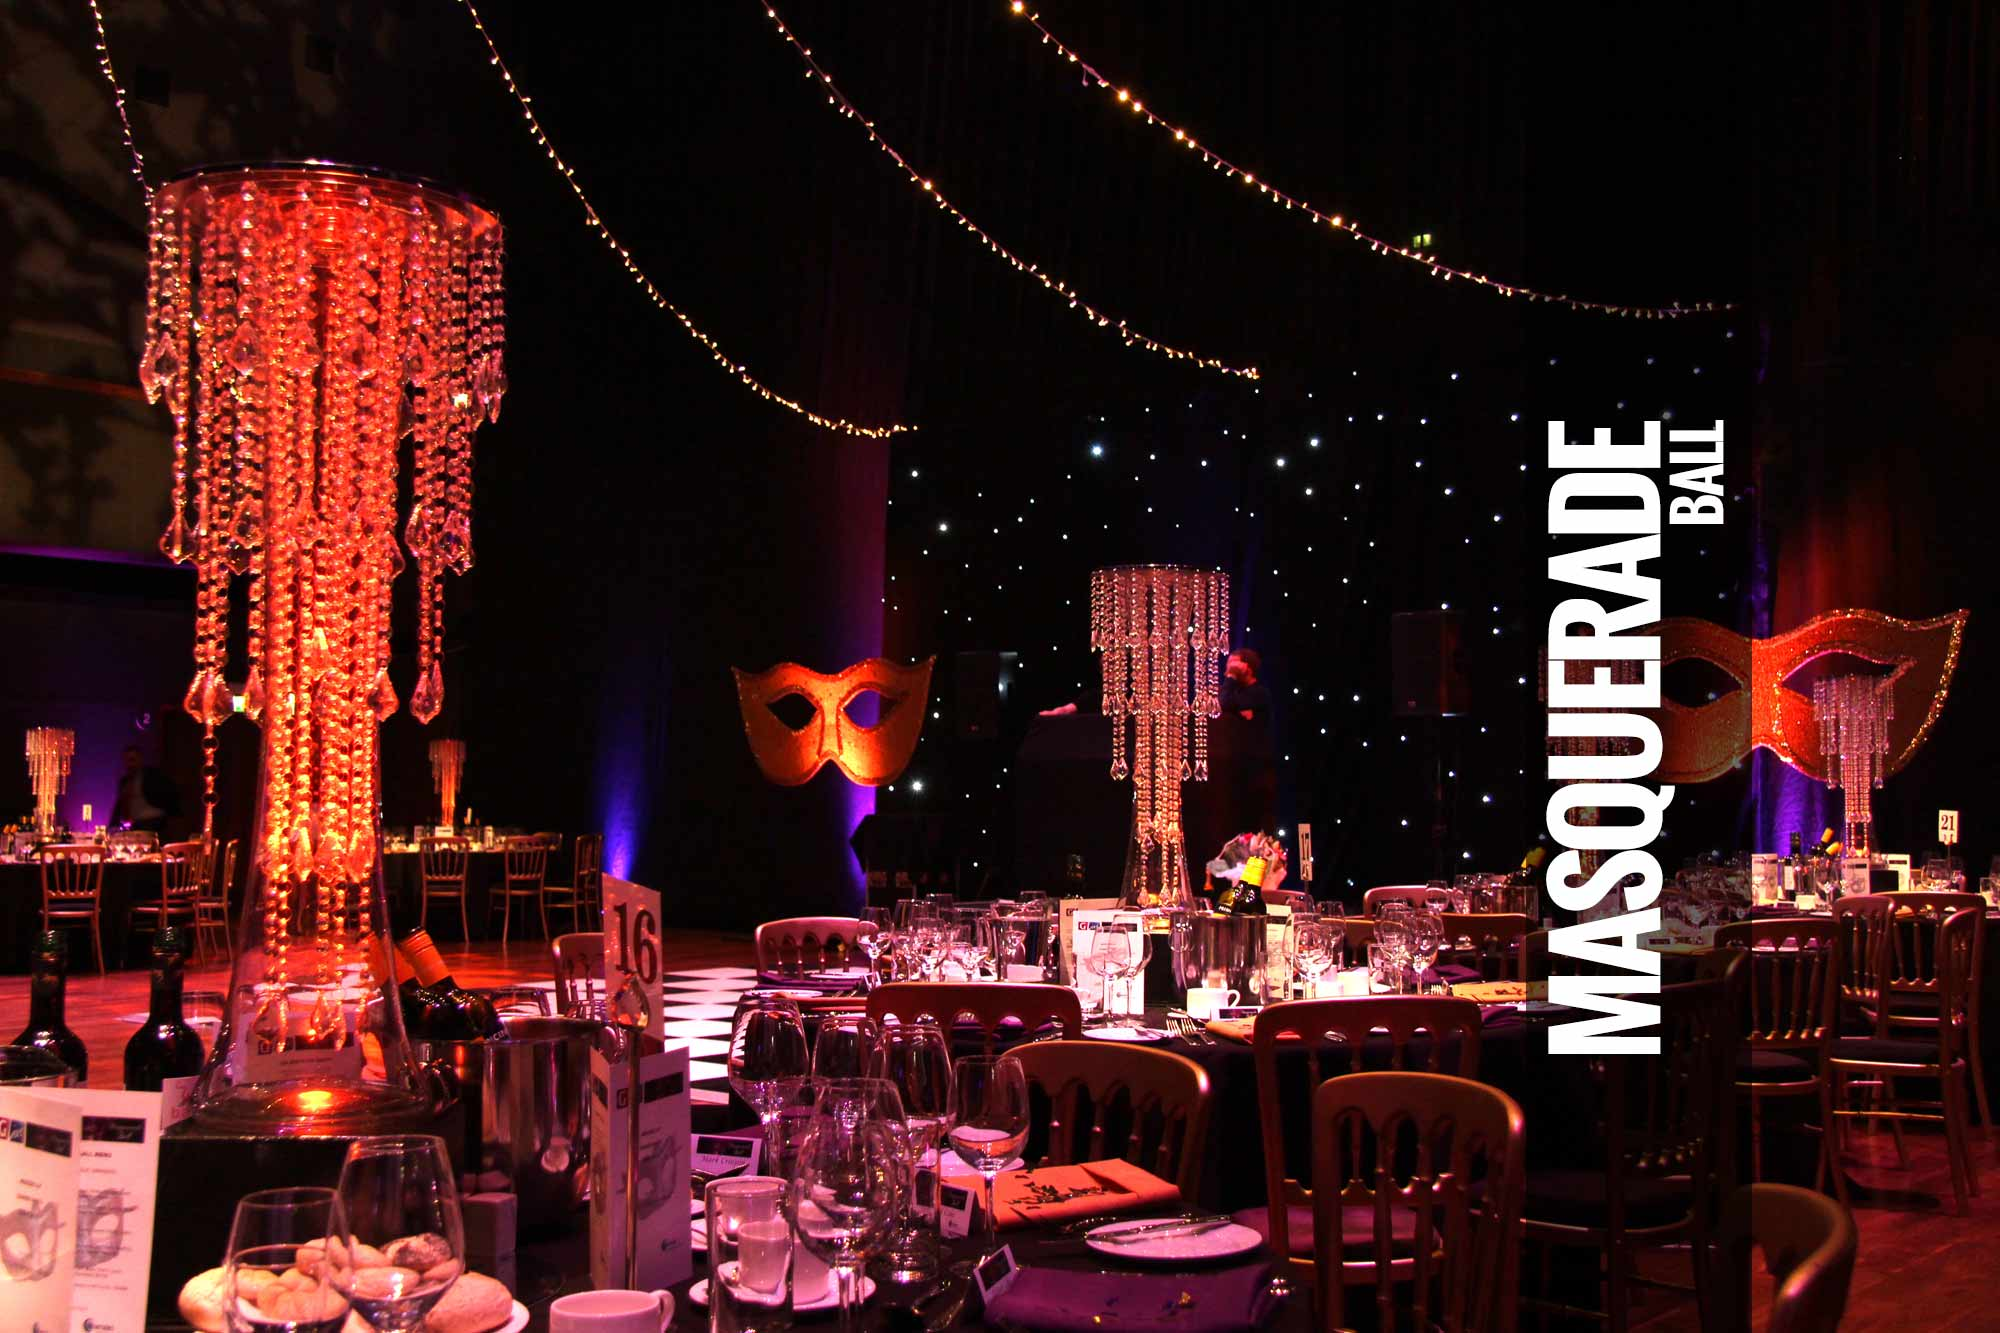 Masquerade Ball Themed Events Amp Parties Masked Ball For Hire